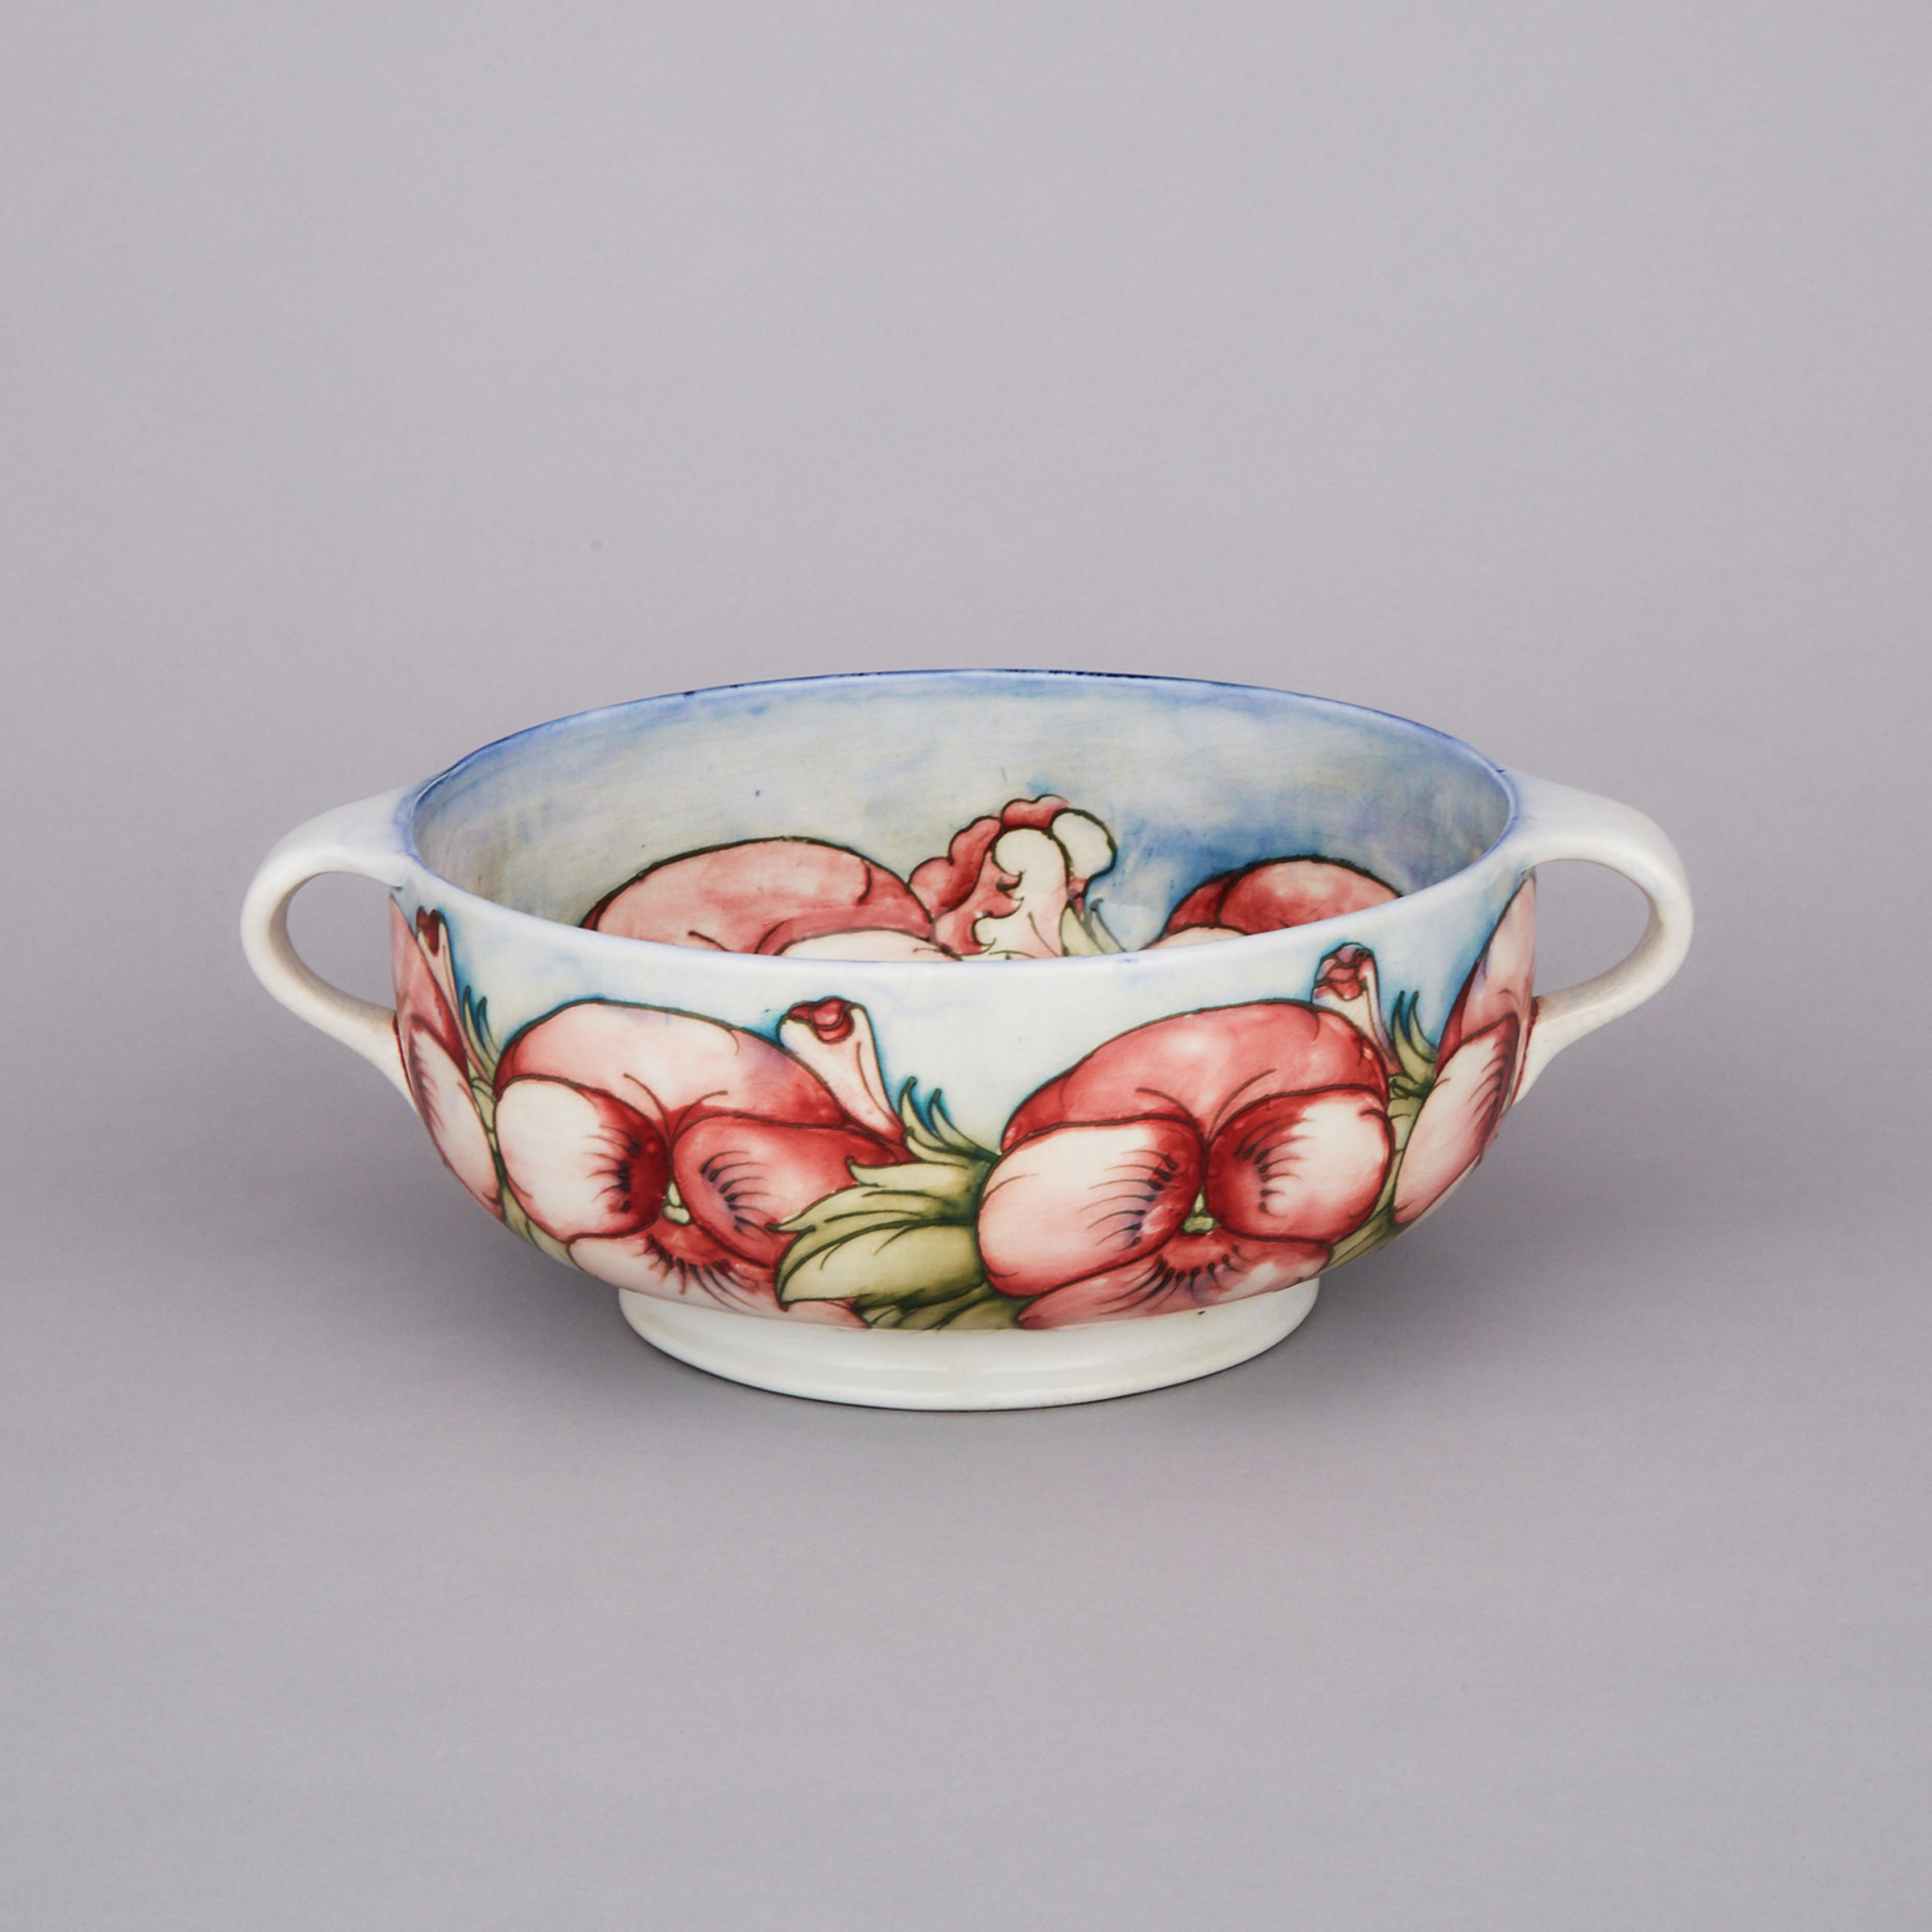 Moorcroft Two-Handled Pansy Bowl, c.1925-30